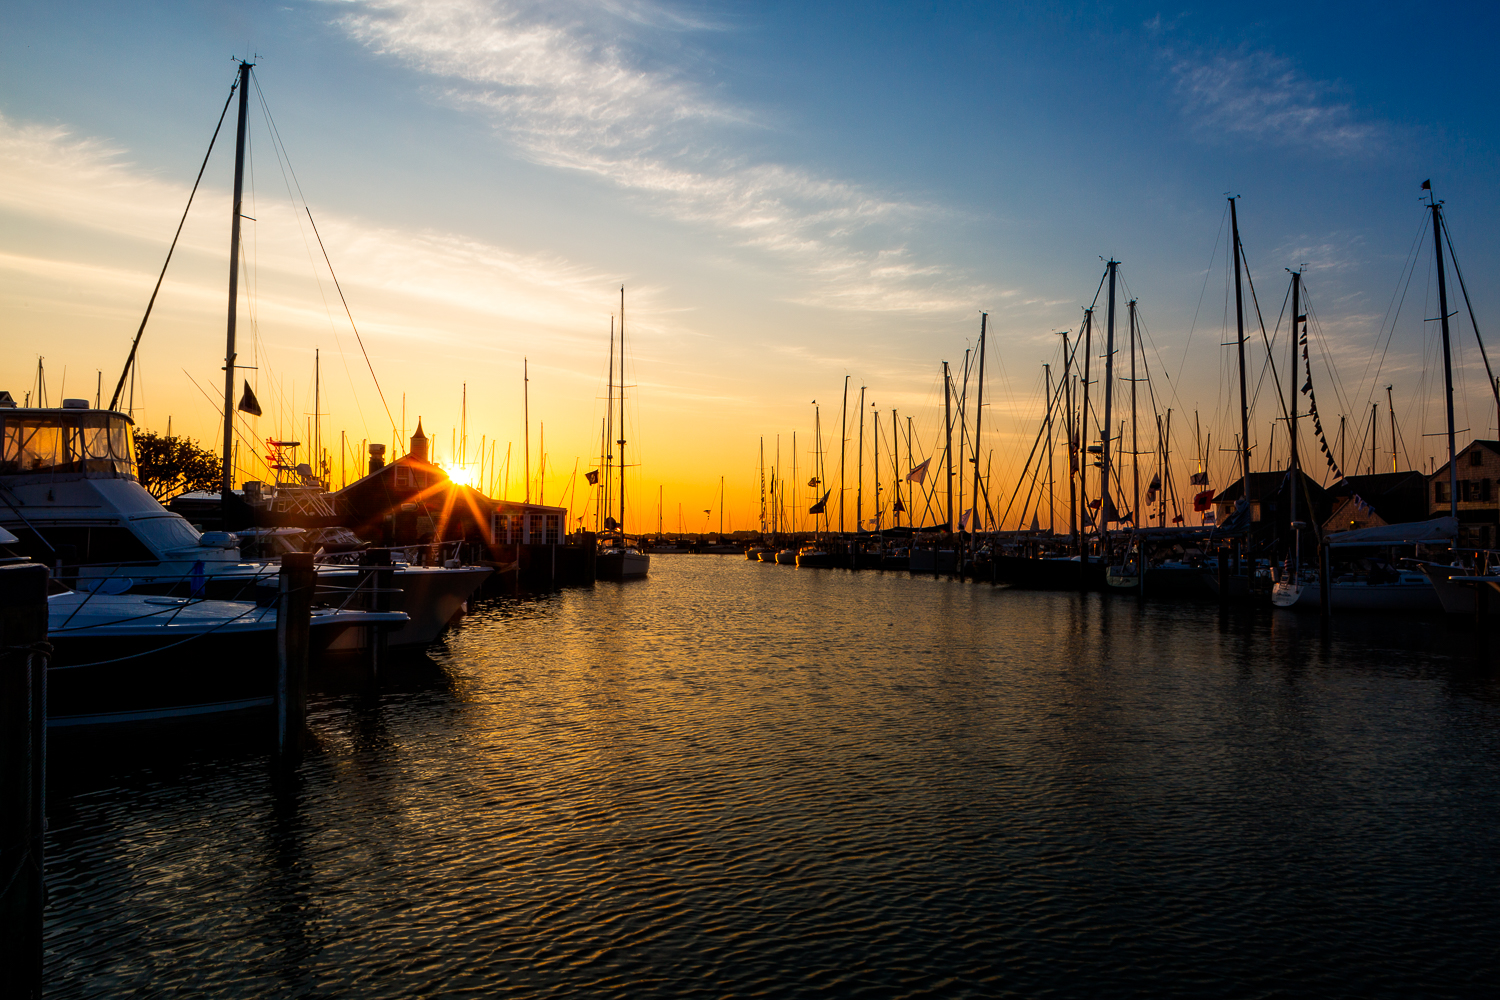 Here is Nantucket Harbor at sunrise. The boats had finished the Figawi Race.